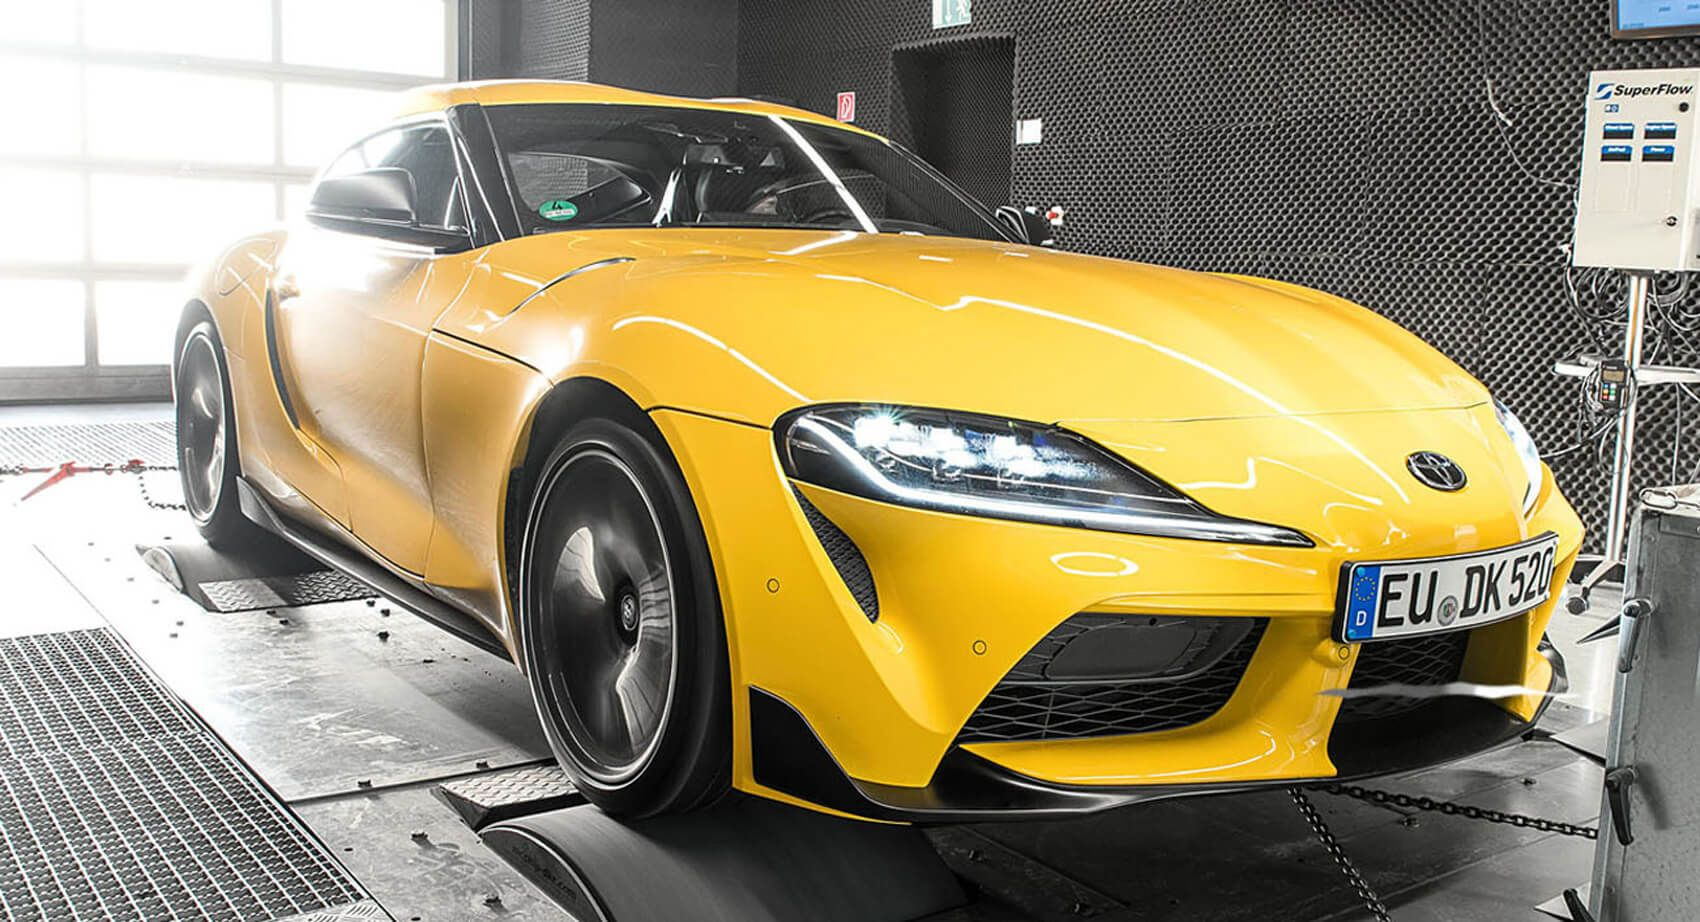 2020 Toyota Gr Supra Goes Bmw M2 Competition Hunting With 439 Hp Tuning Boost In 2020 Bmw M2 Toyota Supra Toyota